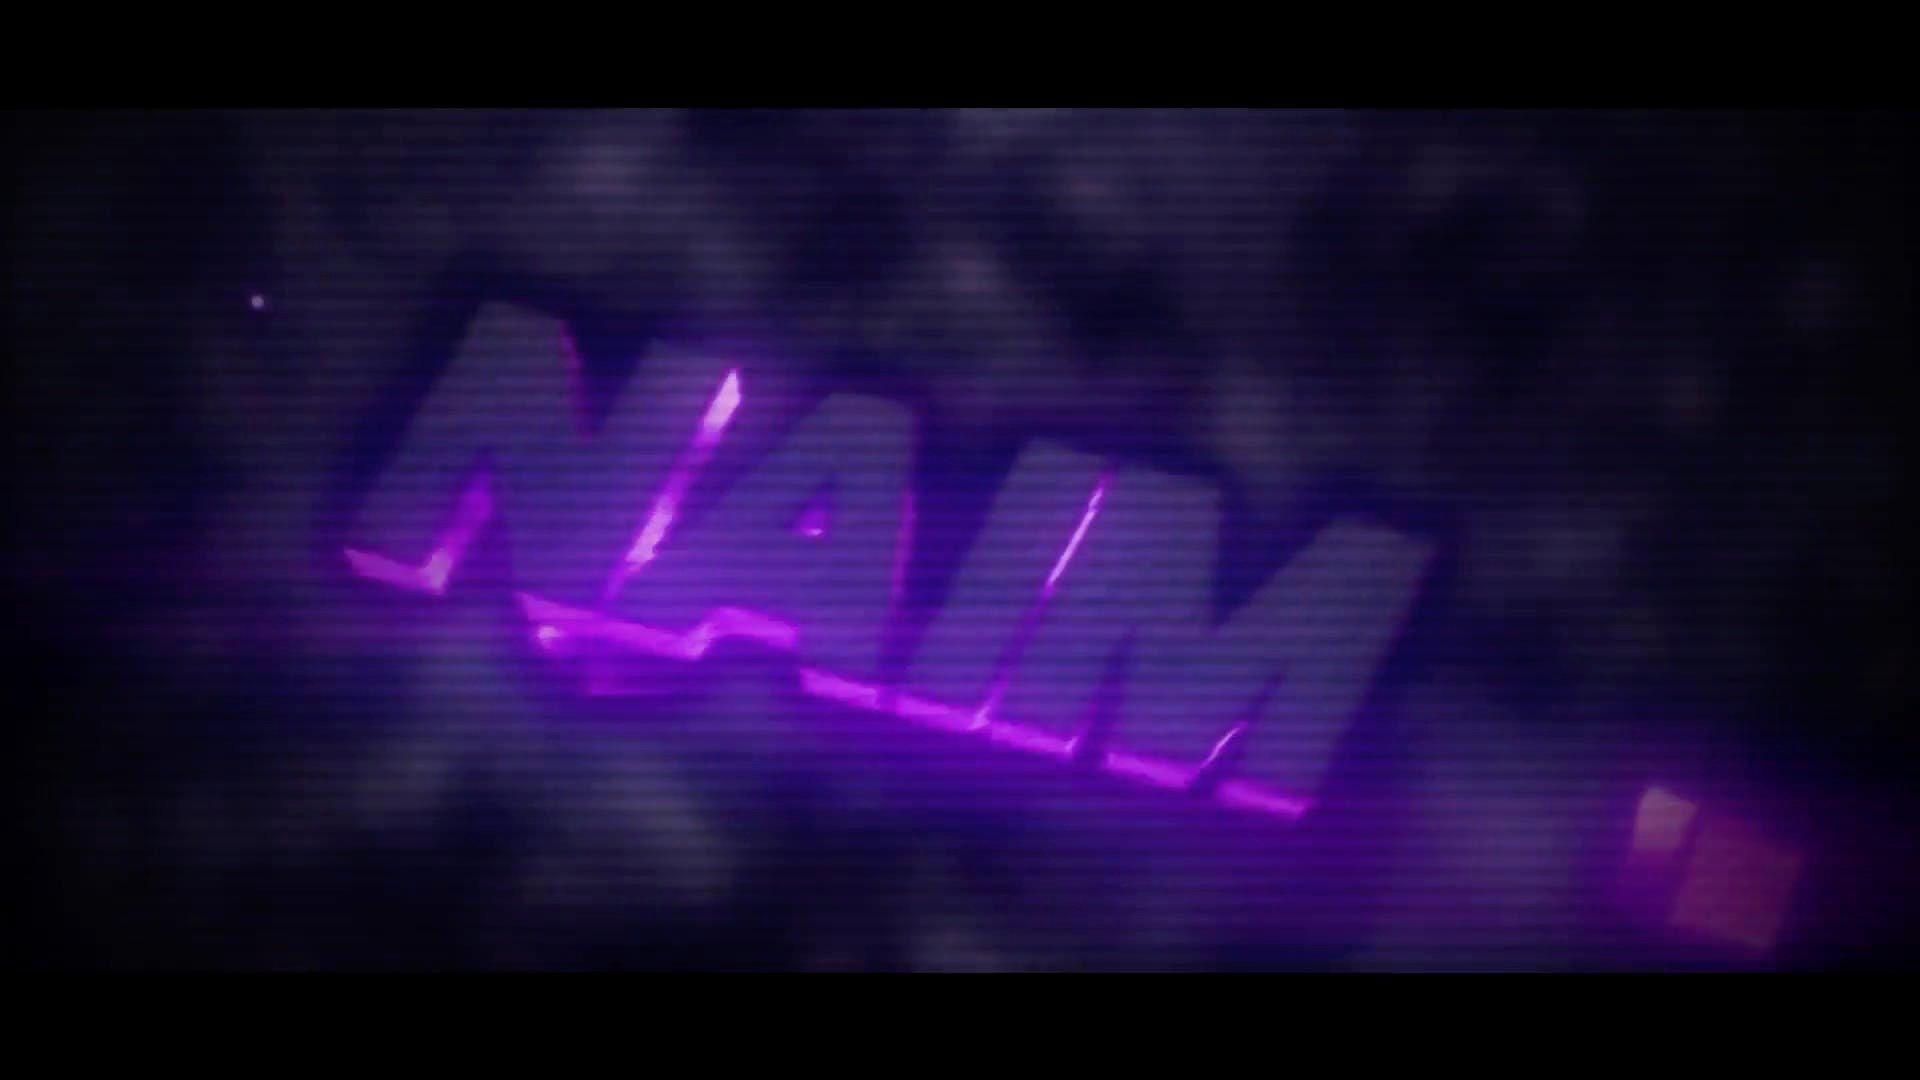 Download 550 Free after Effects 3d Intro Templates and